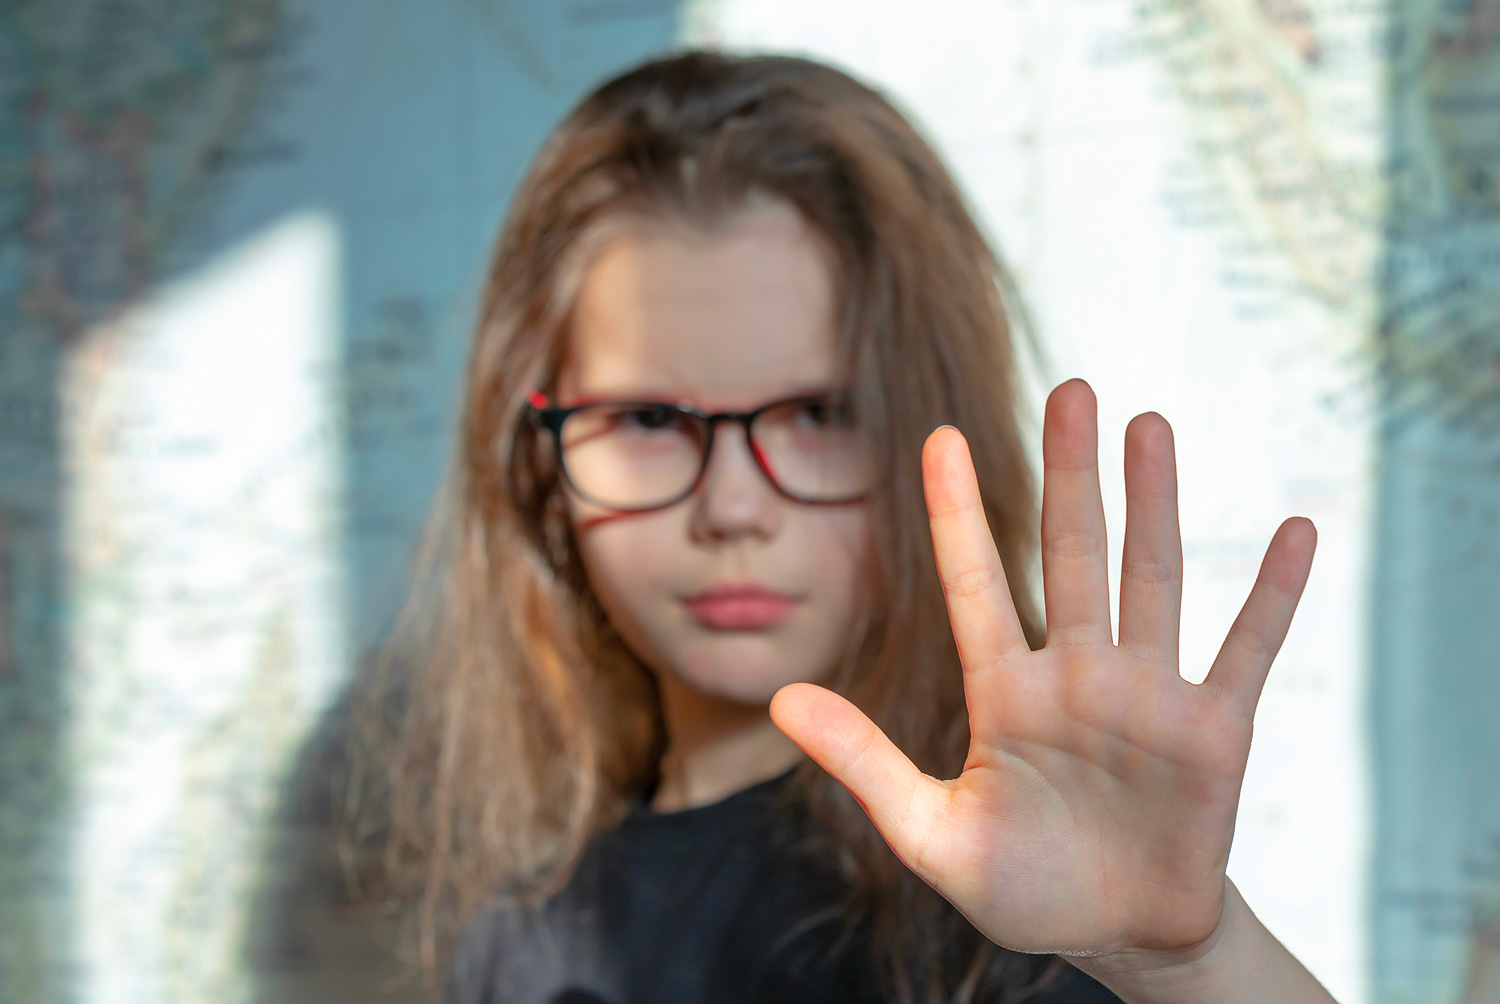 Young girl with eating disorder